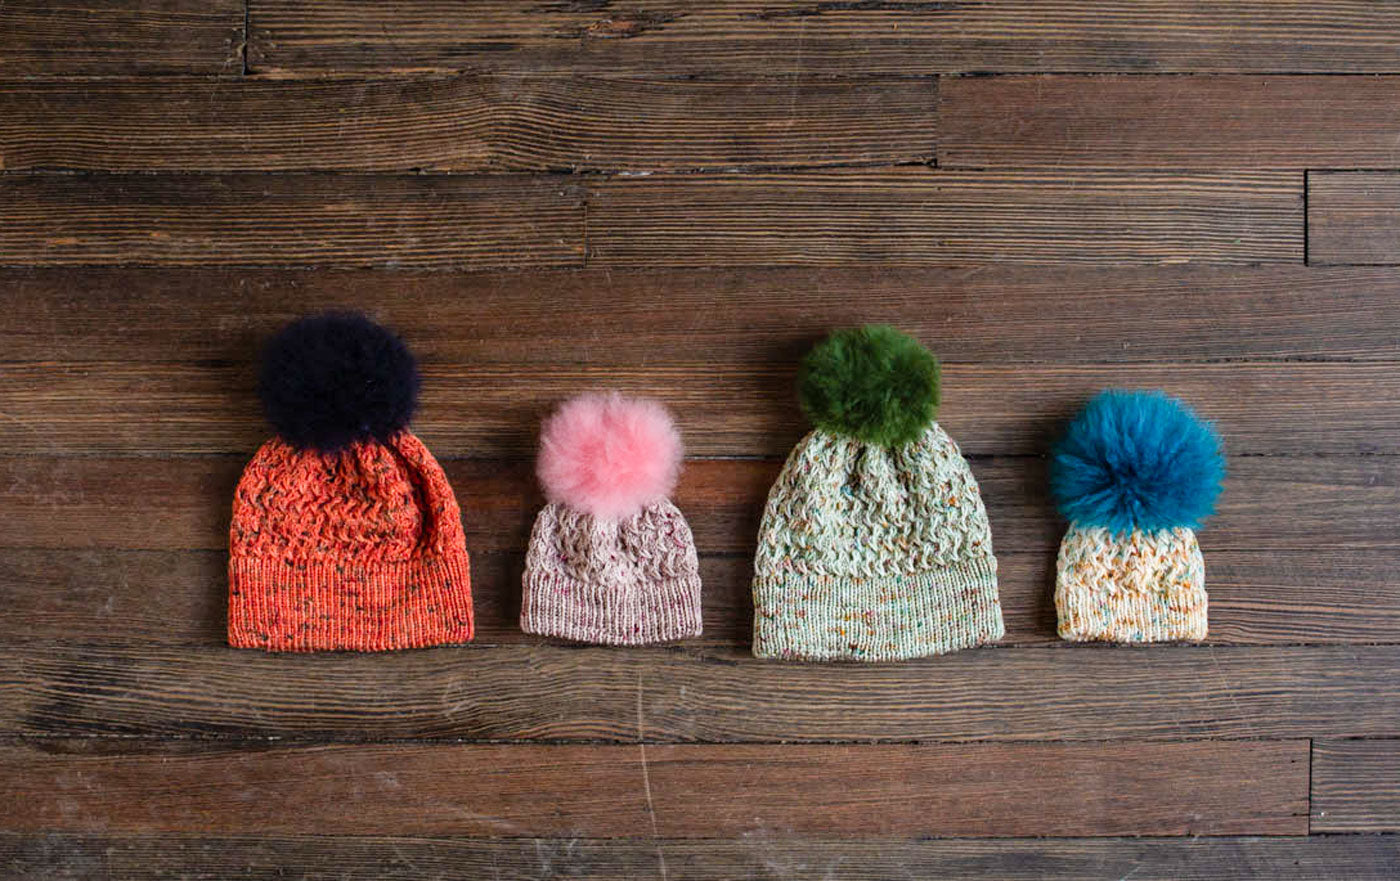 Four hand knit hats lay in a row on a dark wood background. They are made in a variety of sizes from newborn to adult, and a variety of hues of speckled, hand-dyed yarn. Each one is topped with a soft, alpaca fur pompom in a coordinating or contrasting color: a large hat in fiery orange with deep navy speckles is topped with a dark navy pompom; a small pink and grey hat is topped with a pale pink pompom; a sage green hat is topped with an olive green pompom; a tiny newborn hat in speckles of beige and turquoise is topped with a vibrant turquoise pompom.